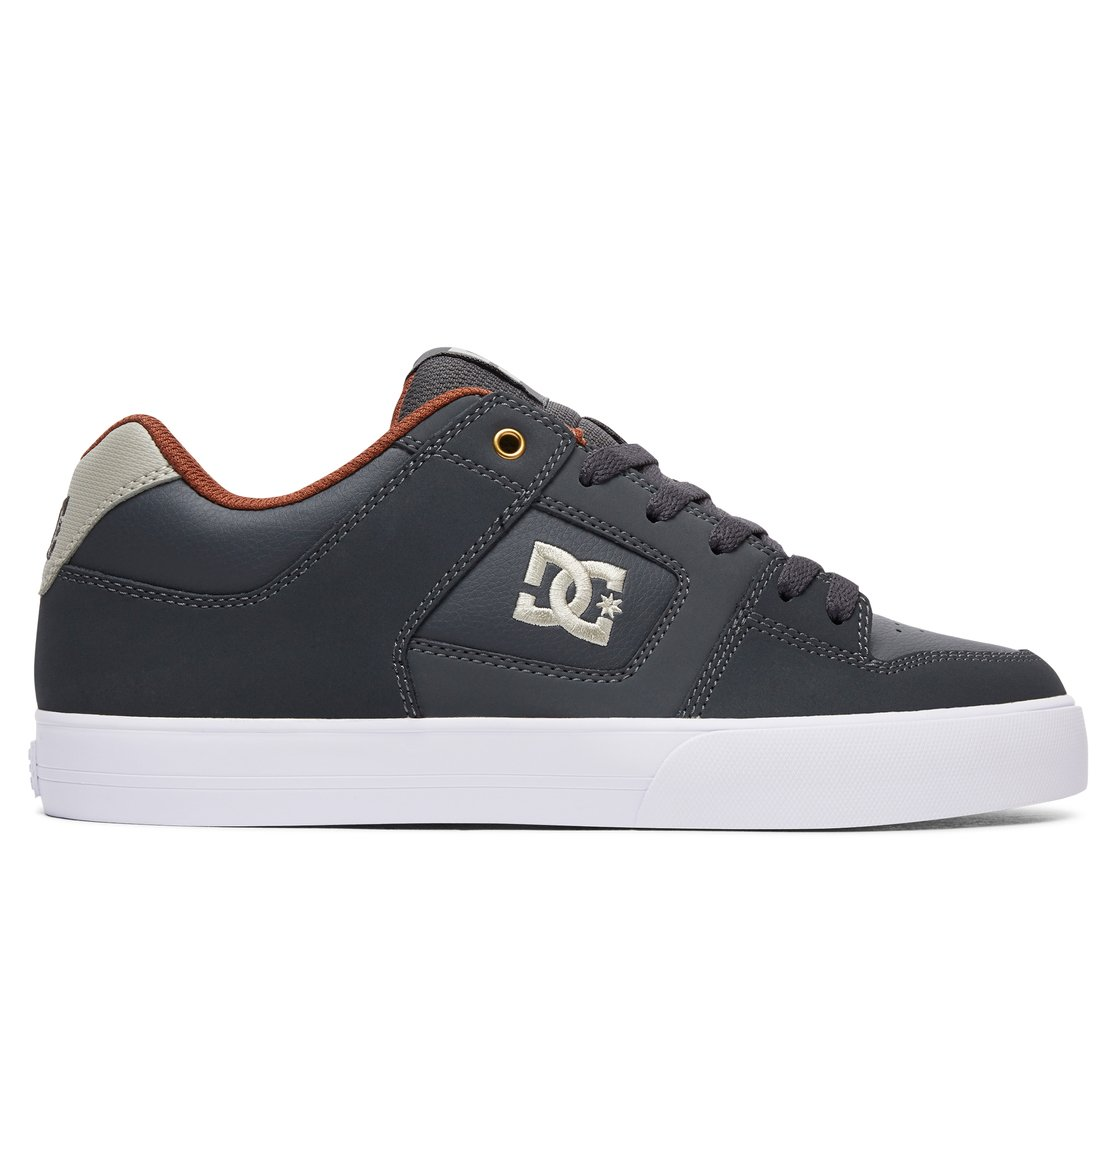 Pure - Chaussures montantes - Marron - DC Shoes